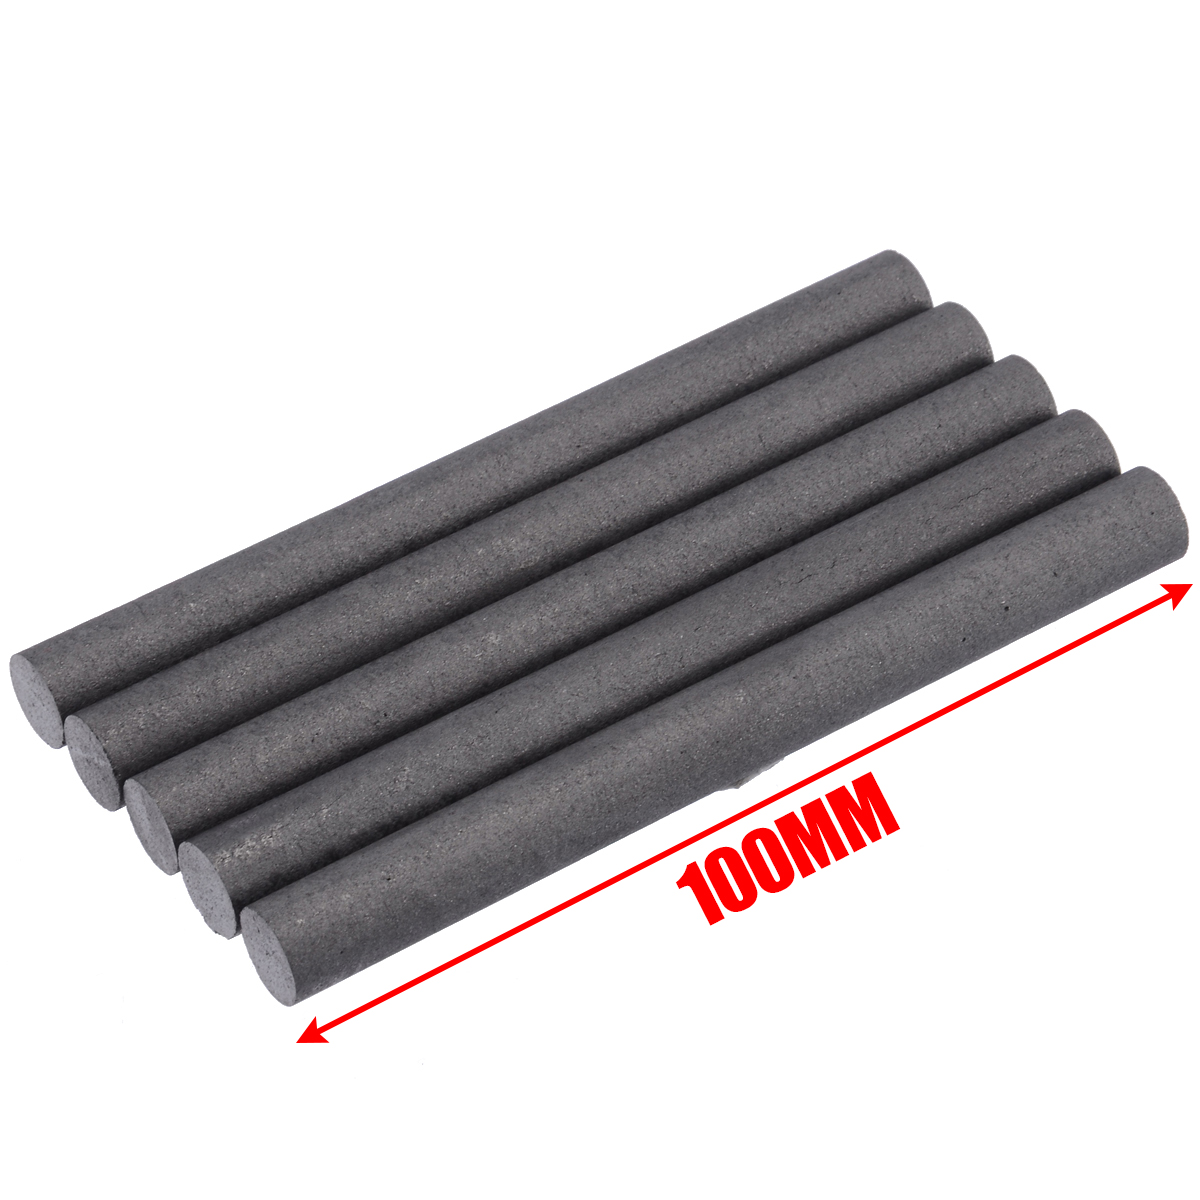 5Pcs High Purity 99.99% Graphite Rods High Temperature Conductive Graphite Electrode Cylinder Rods Bars 100mm For Industry Tools